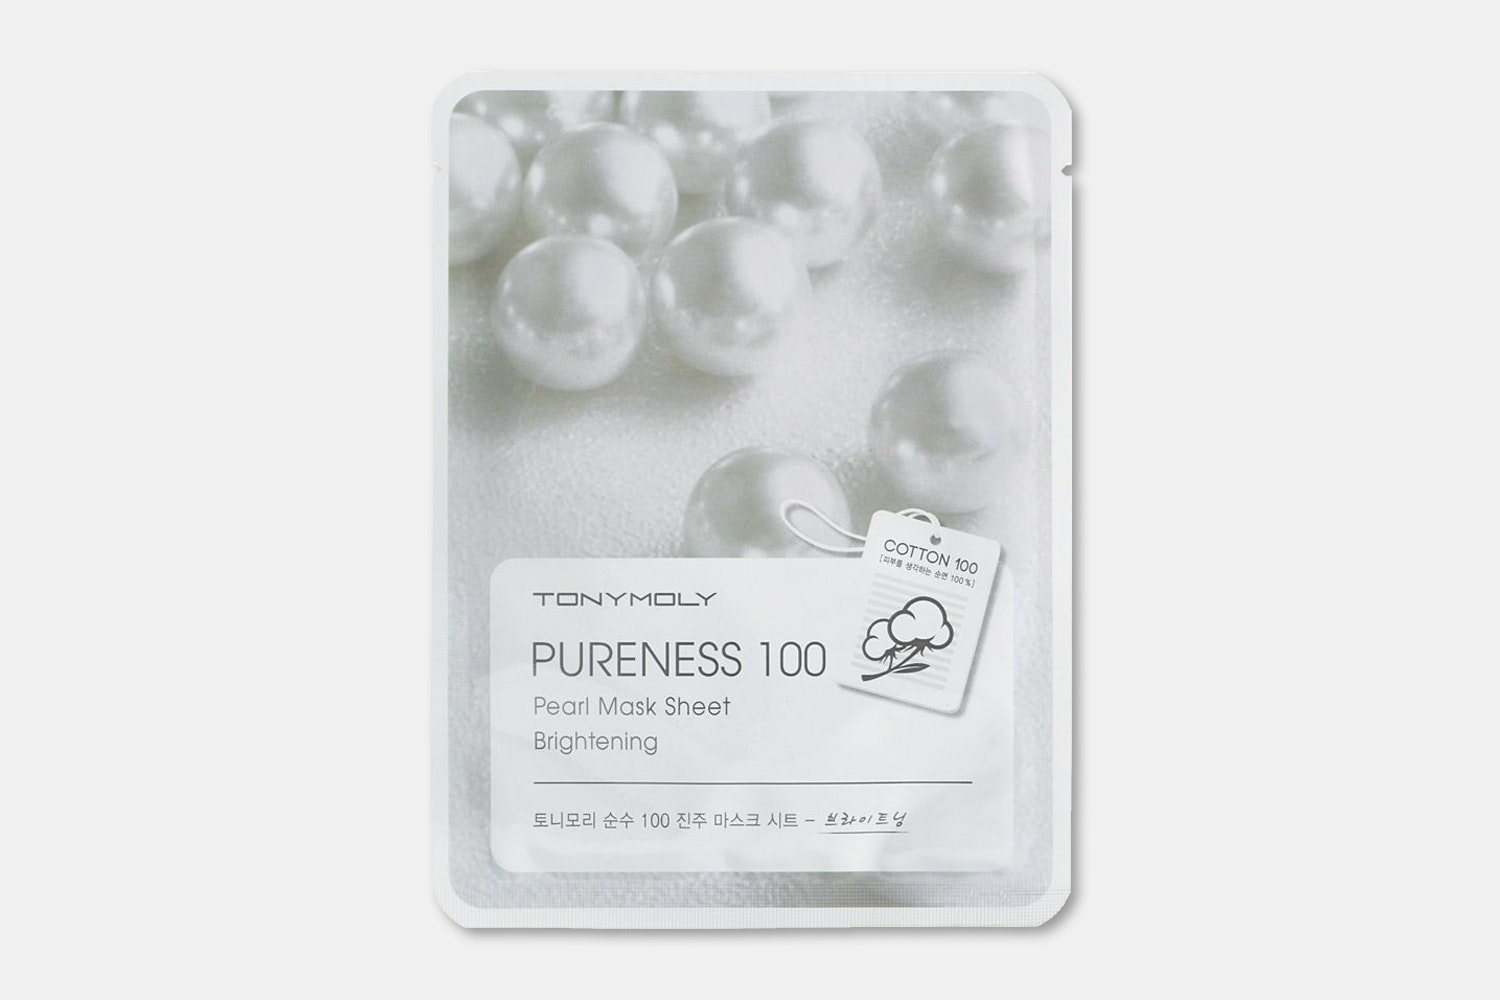 Pureness 100 pearl mask